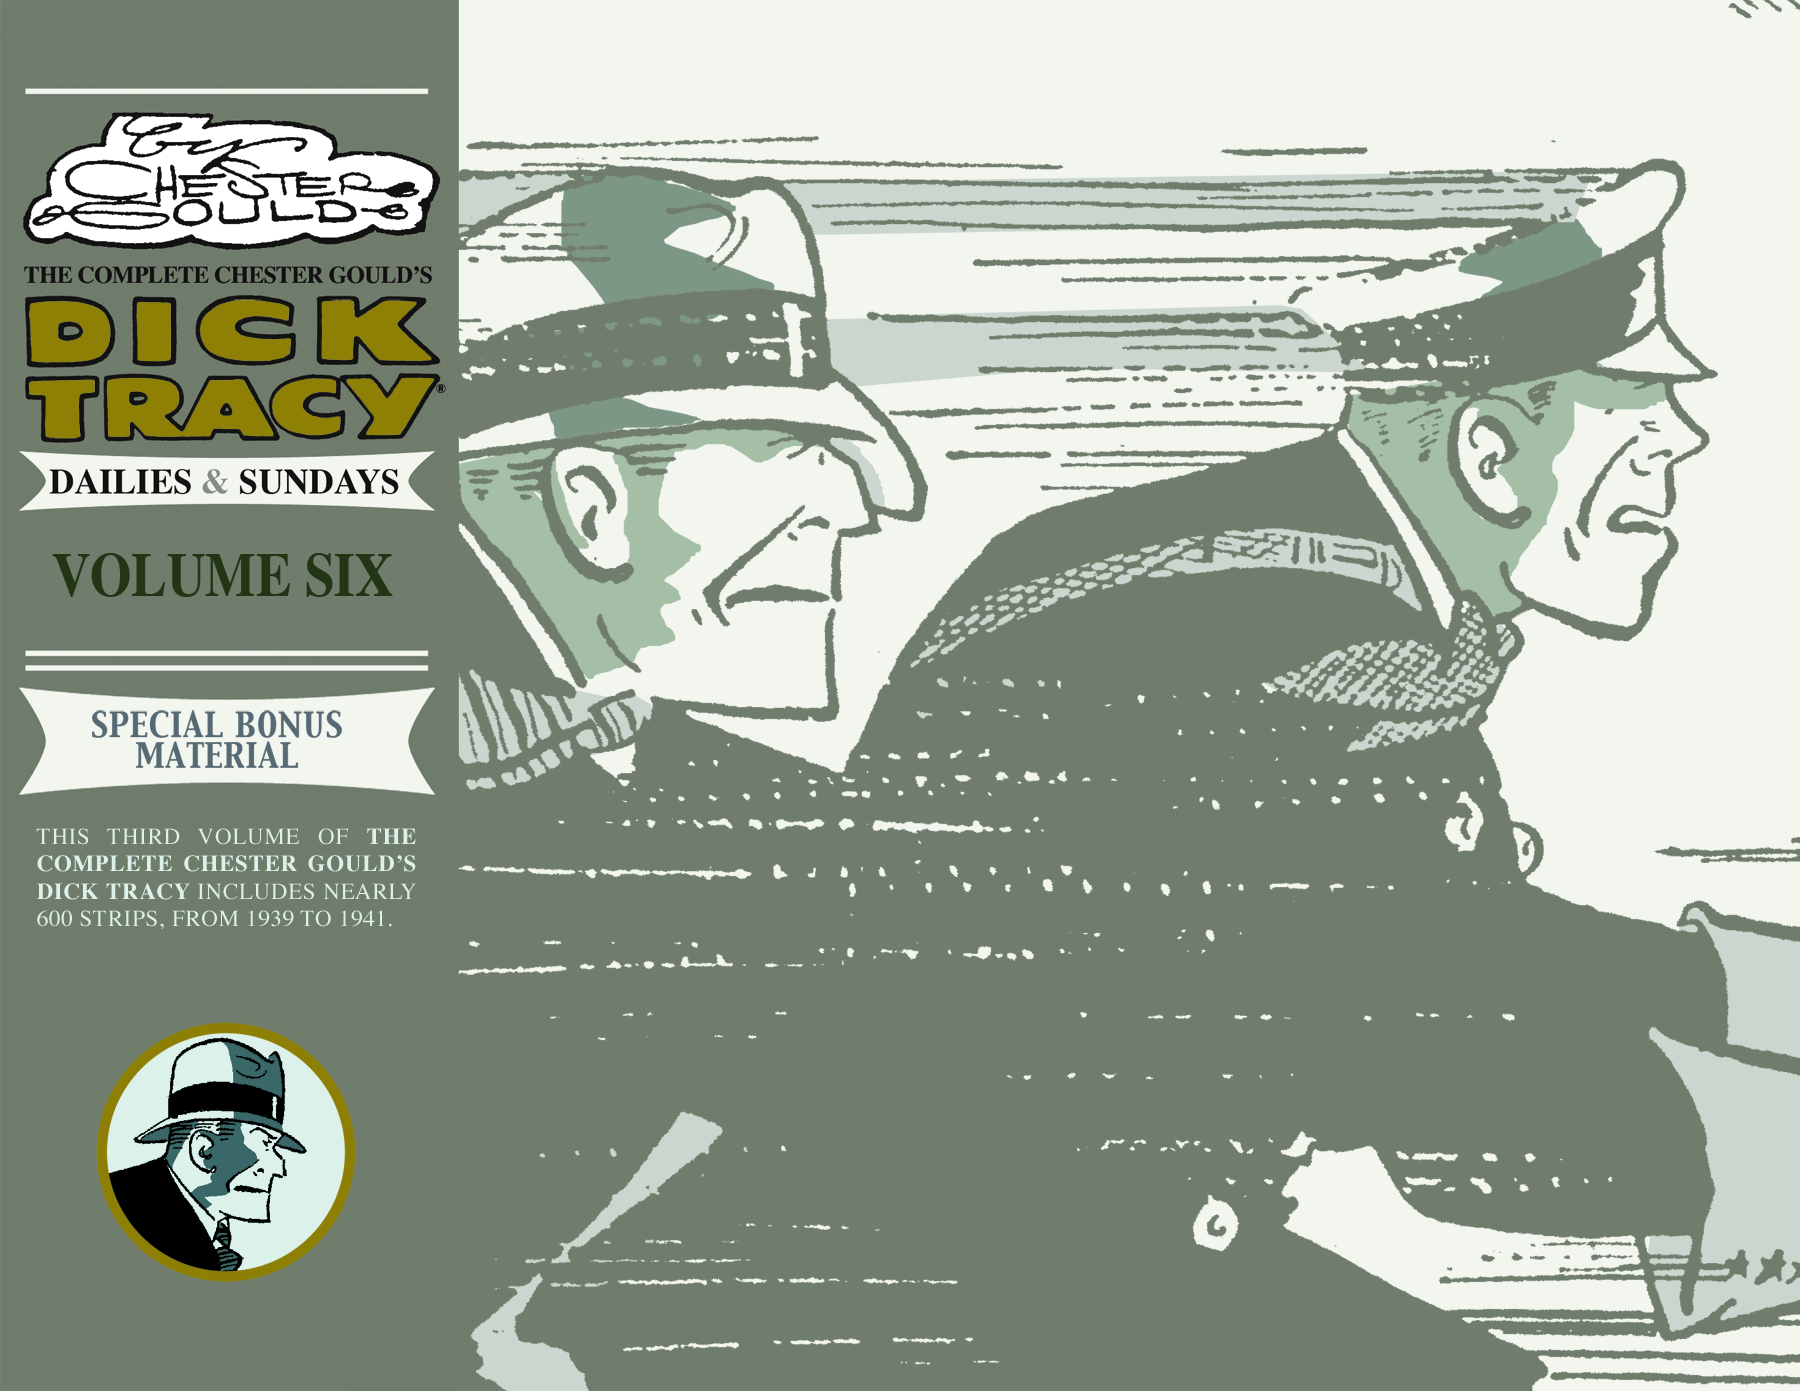 COMPLETE CHESTER GOULD DICK TRACY HC VOL 06